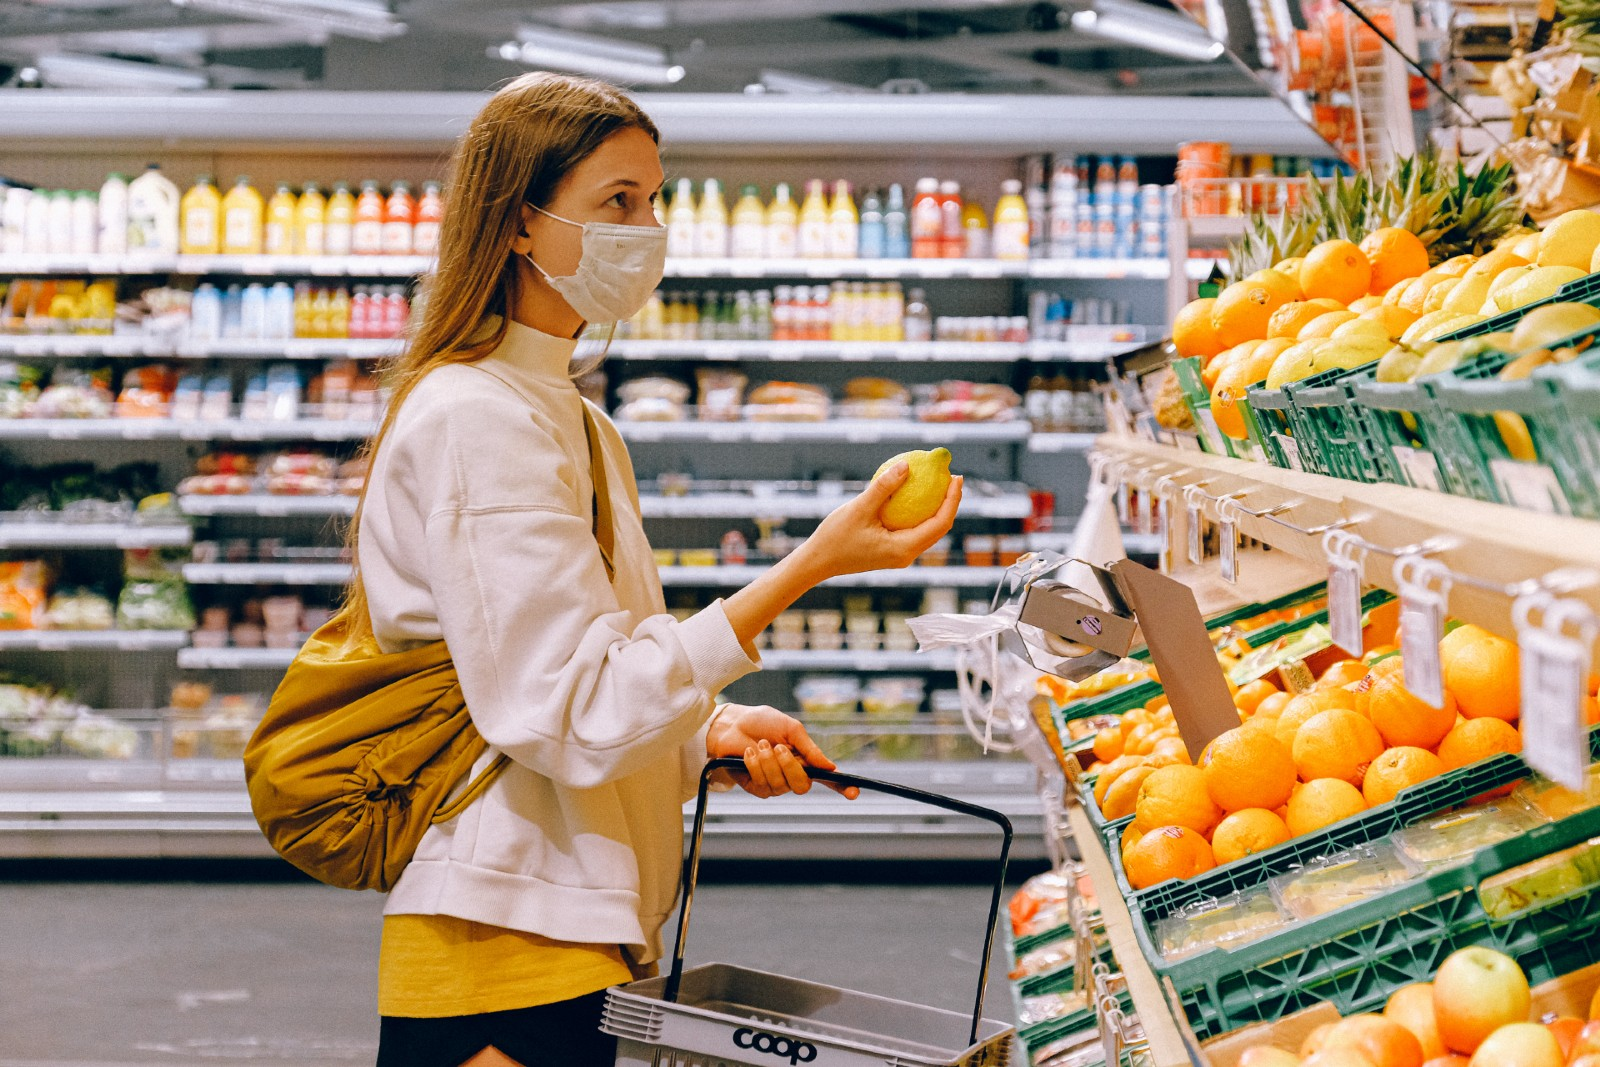 Covid & the Consumer: The Changing Face of the Supermarket Shop